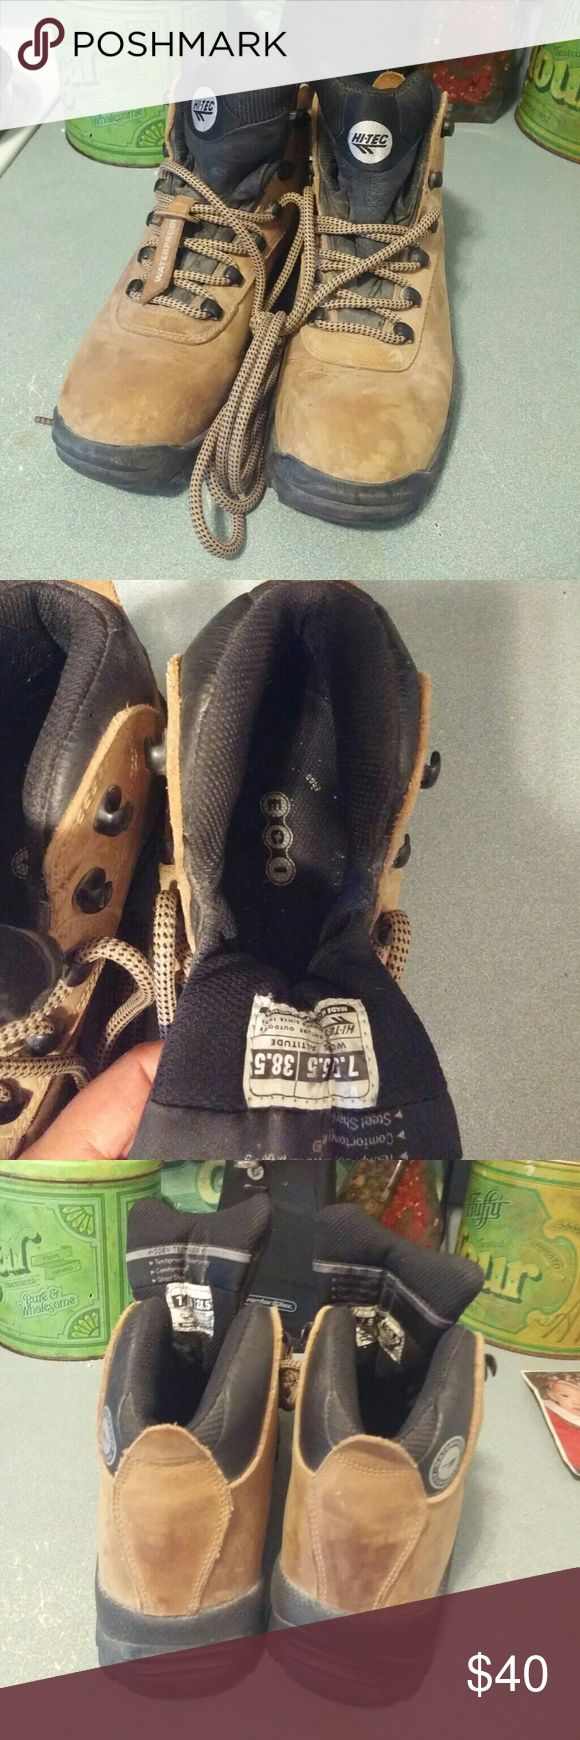 Hi-Tec Tan / Black waterproof hiking boots. Sz 7.5 Hi-Tec Tan / Black waterproof Altitude hiking boots. Sz 7.5  Waterproof, steel shank, worn once. Too tight on my baby piggy toes. Very good shape. Hi-Tec Shoes Ankle Boots & Booties